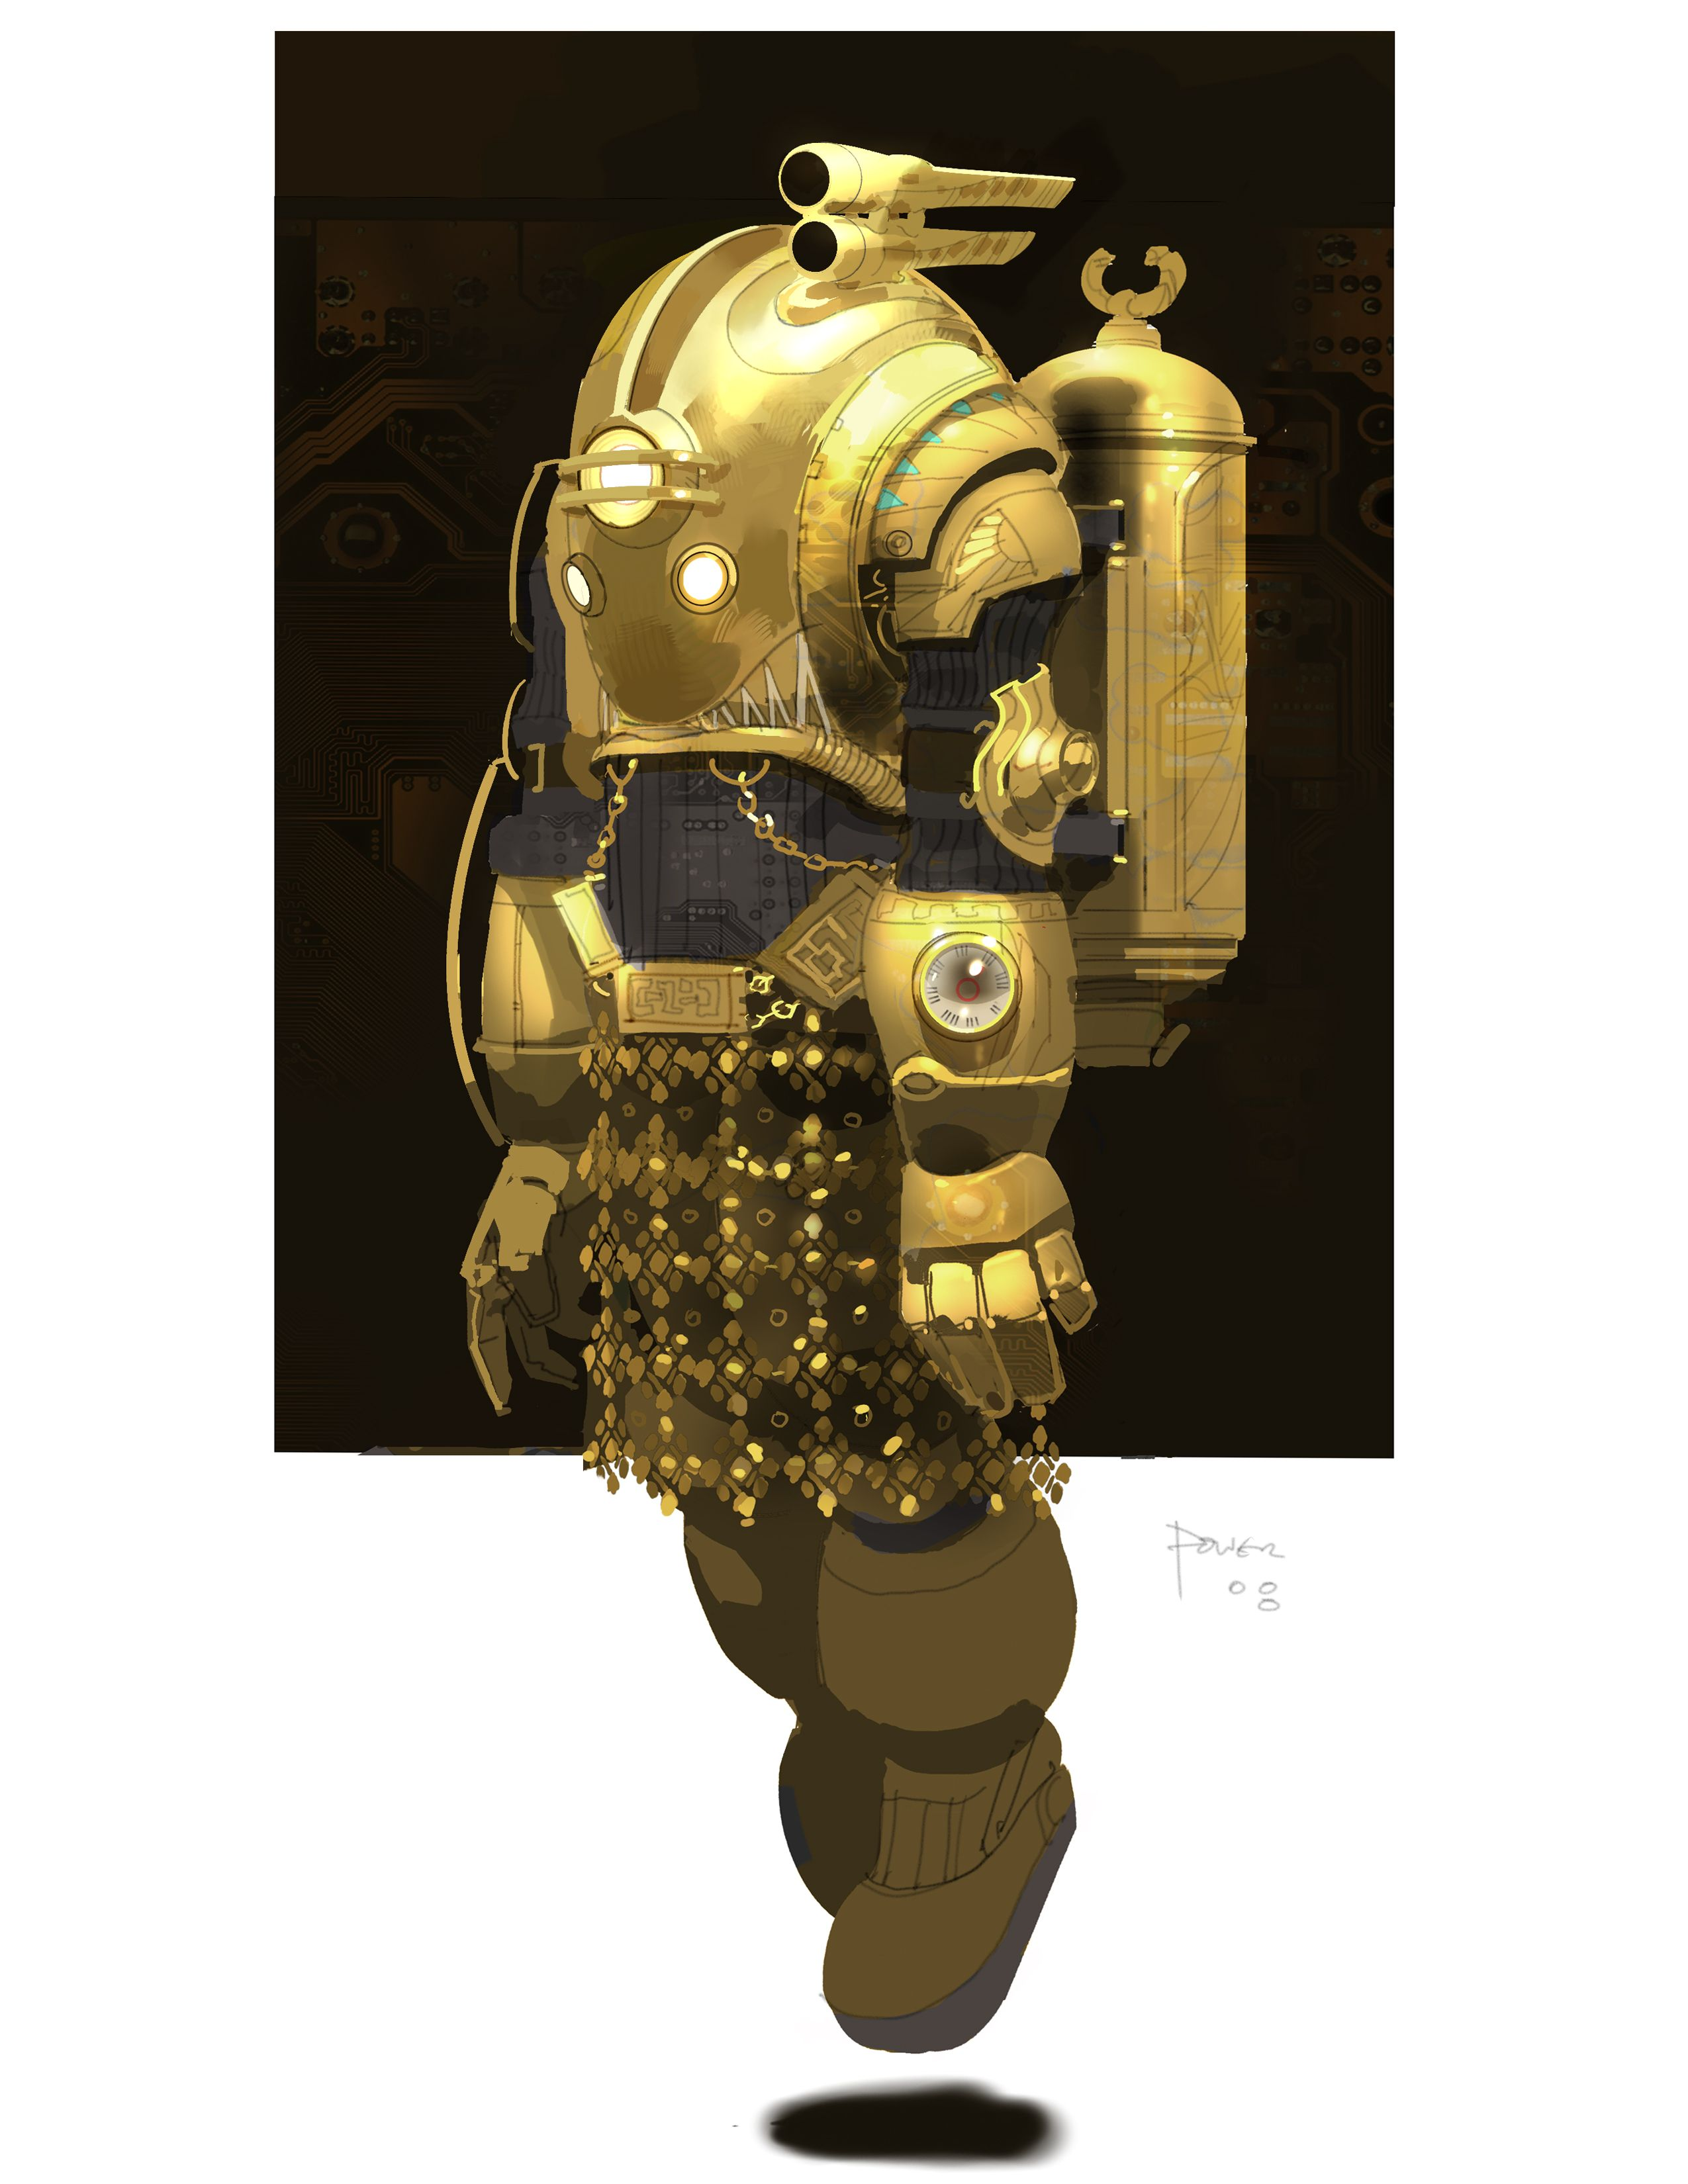 Pin By Walter On Robot Material In 2020 Bioshock Art